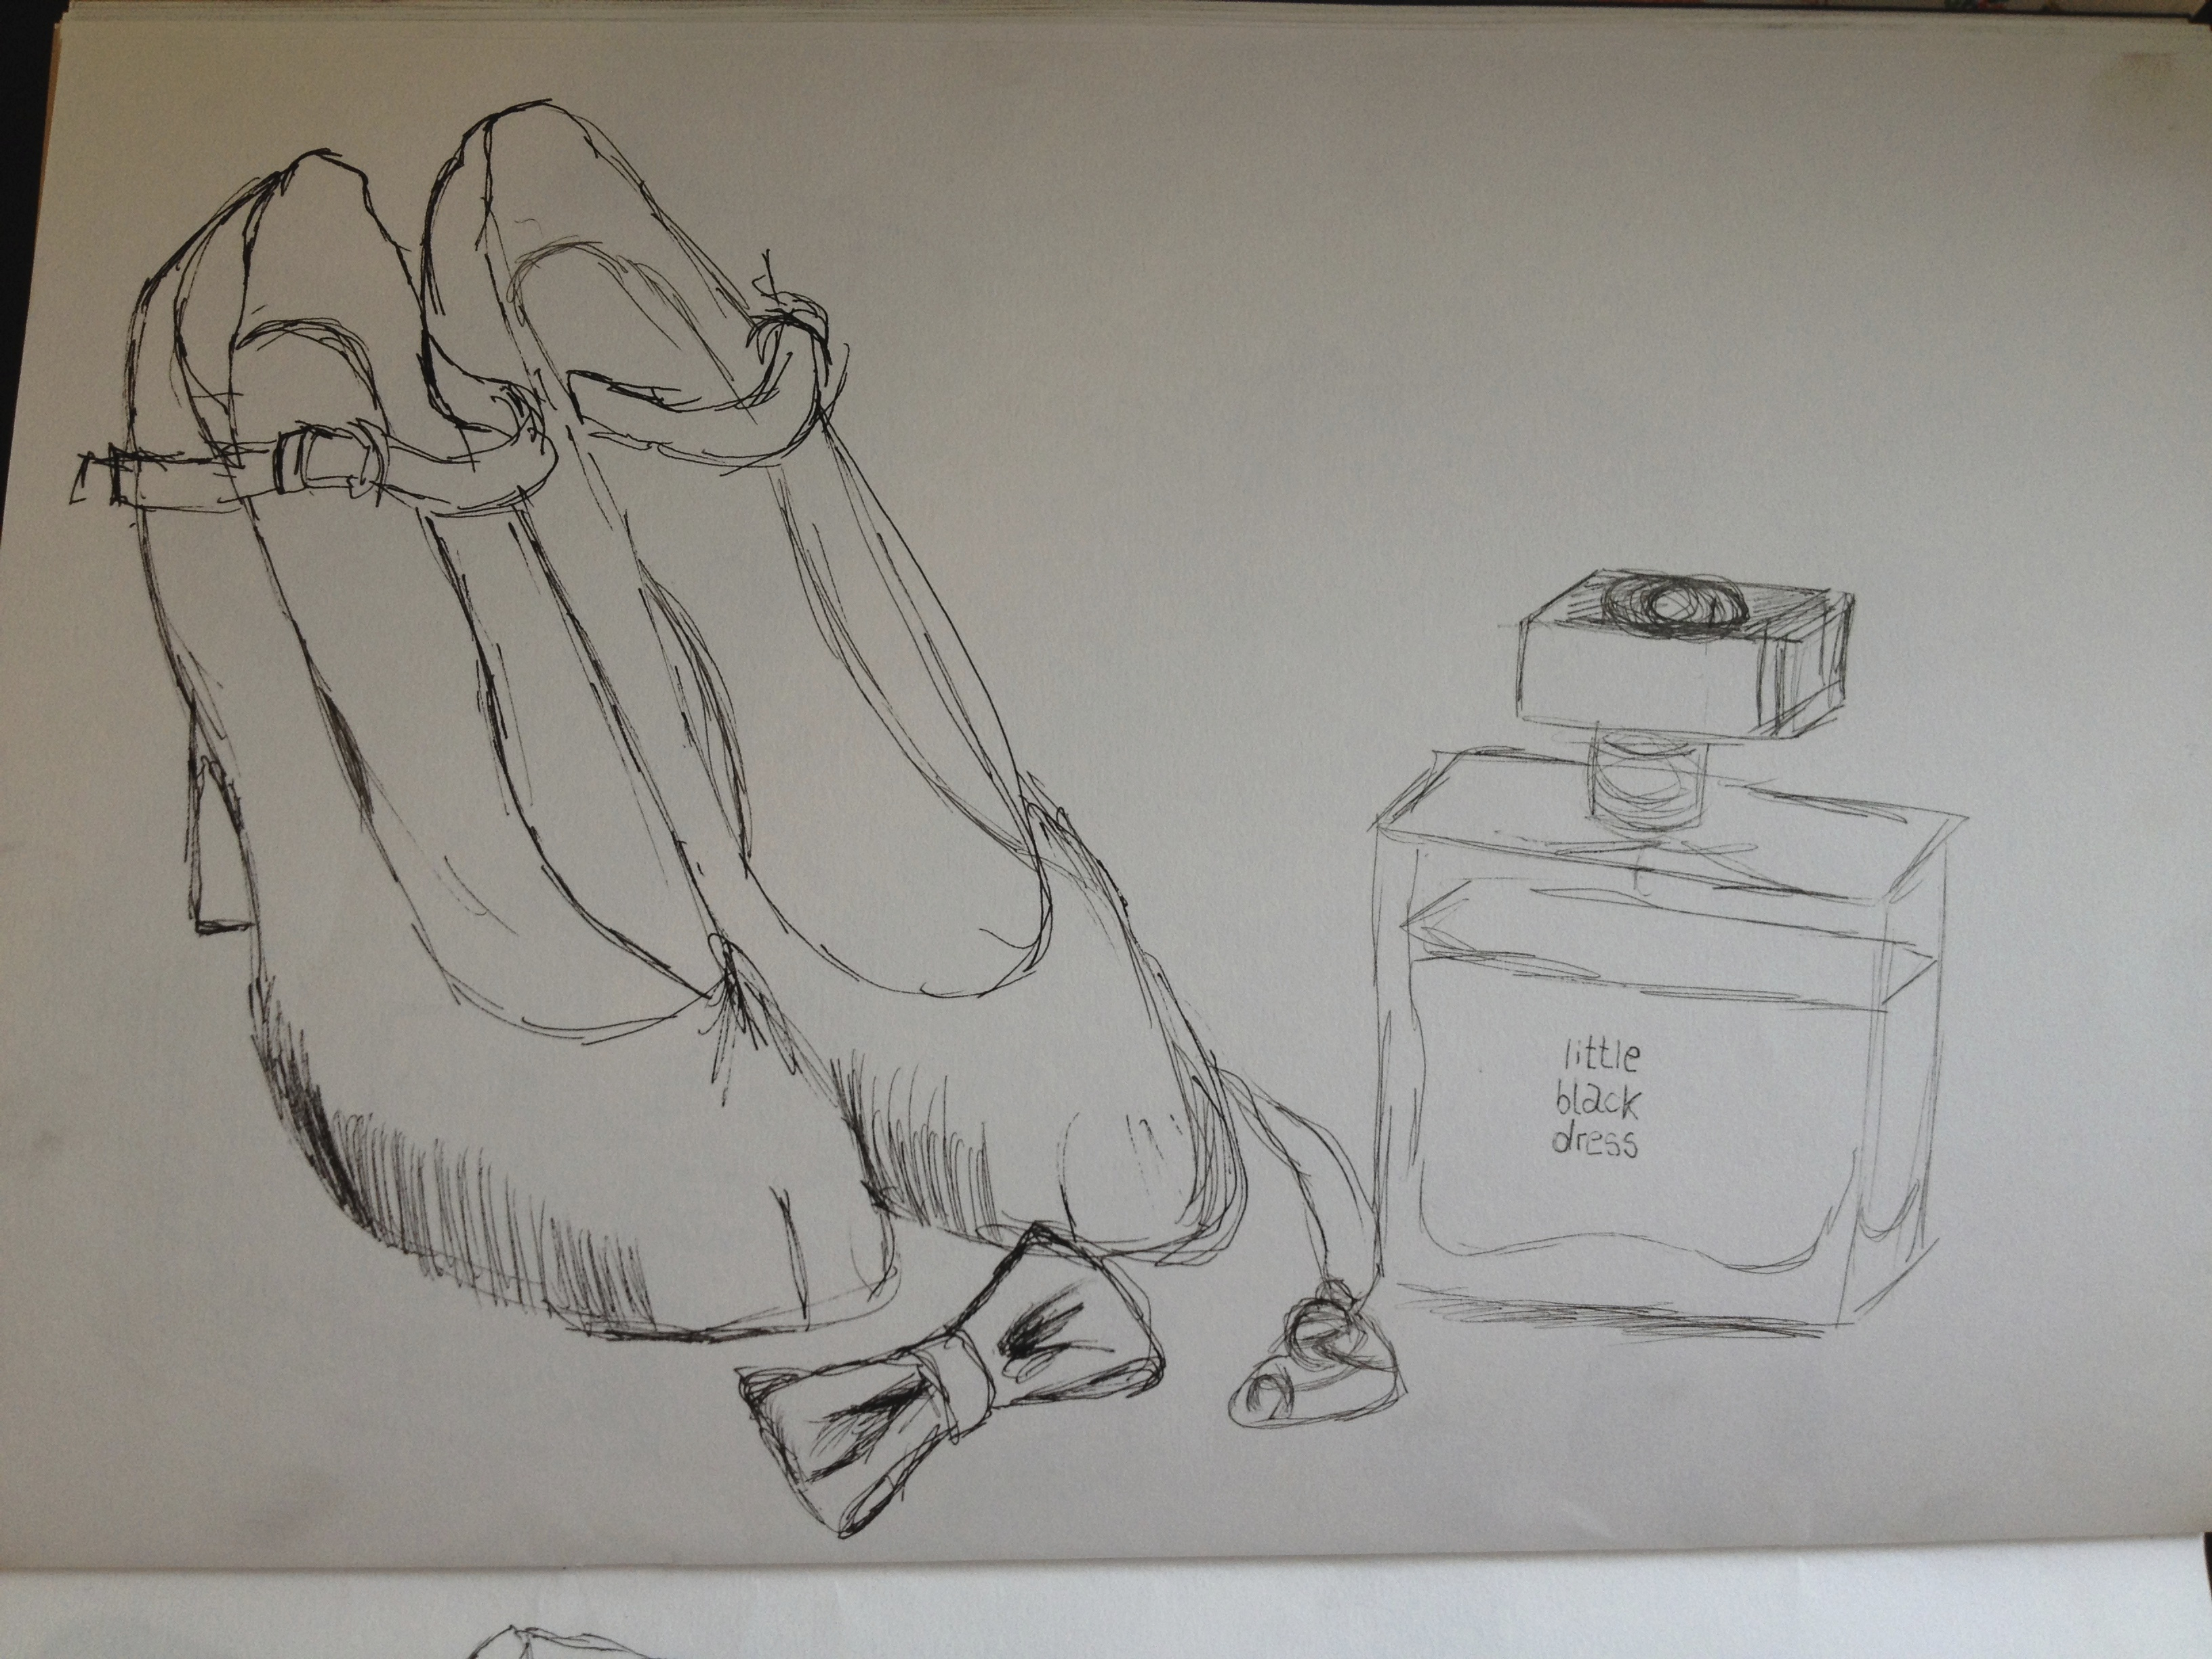 3264x2448 Meaning Of Life Drawing Meaning Of Still Life Drawing Best